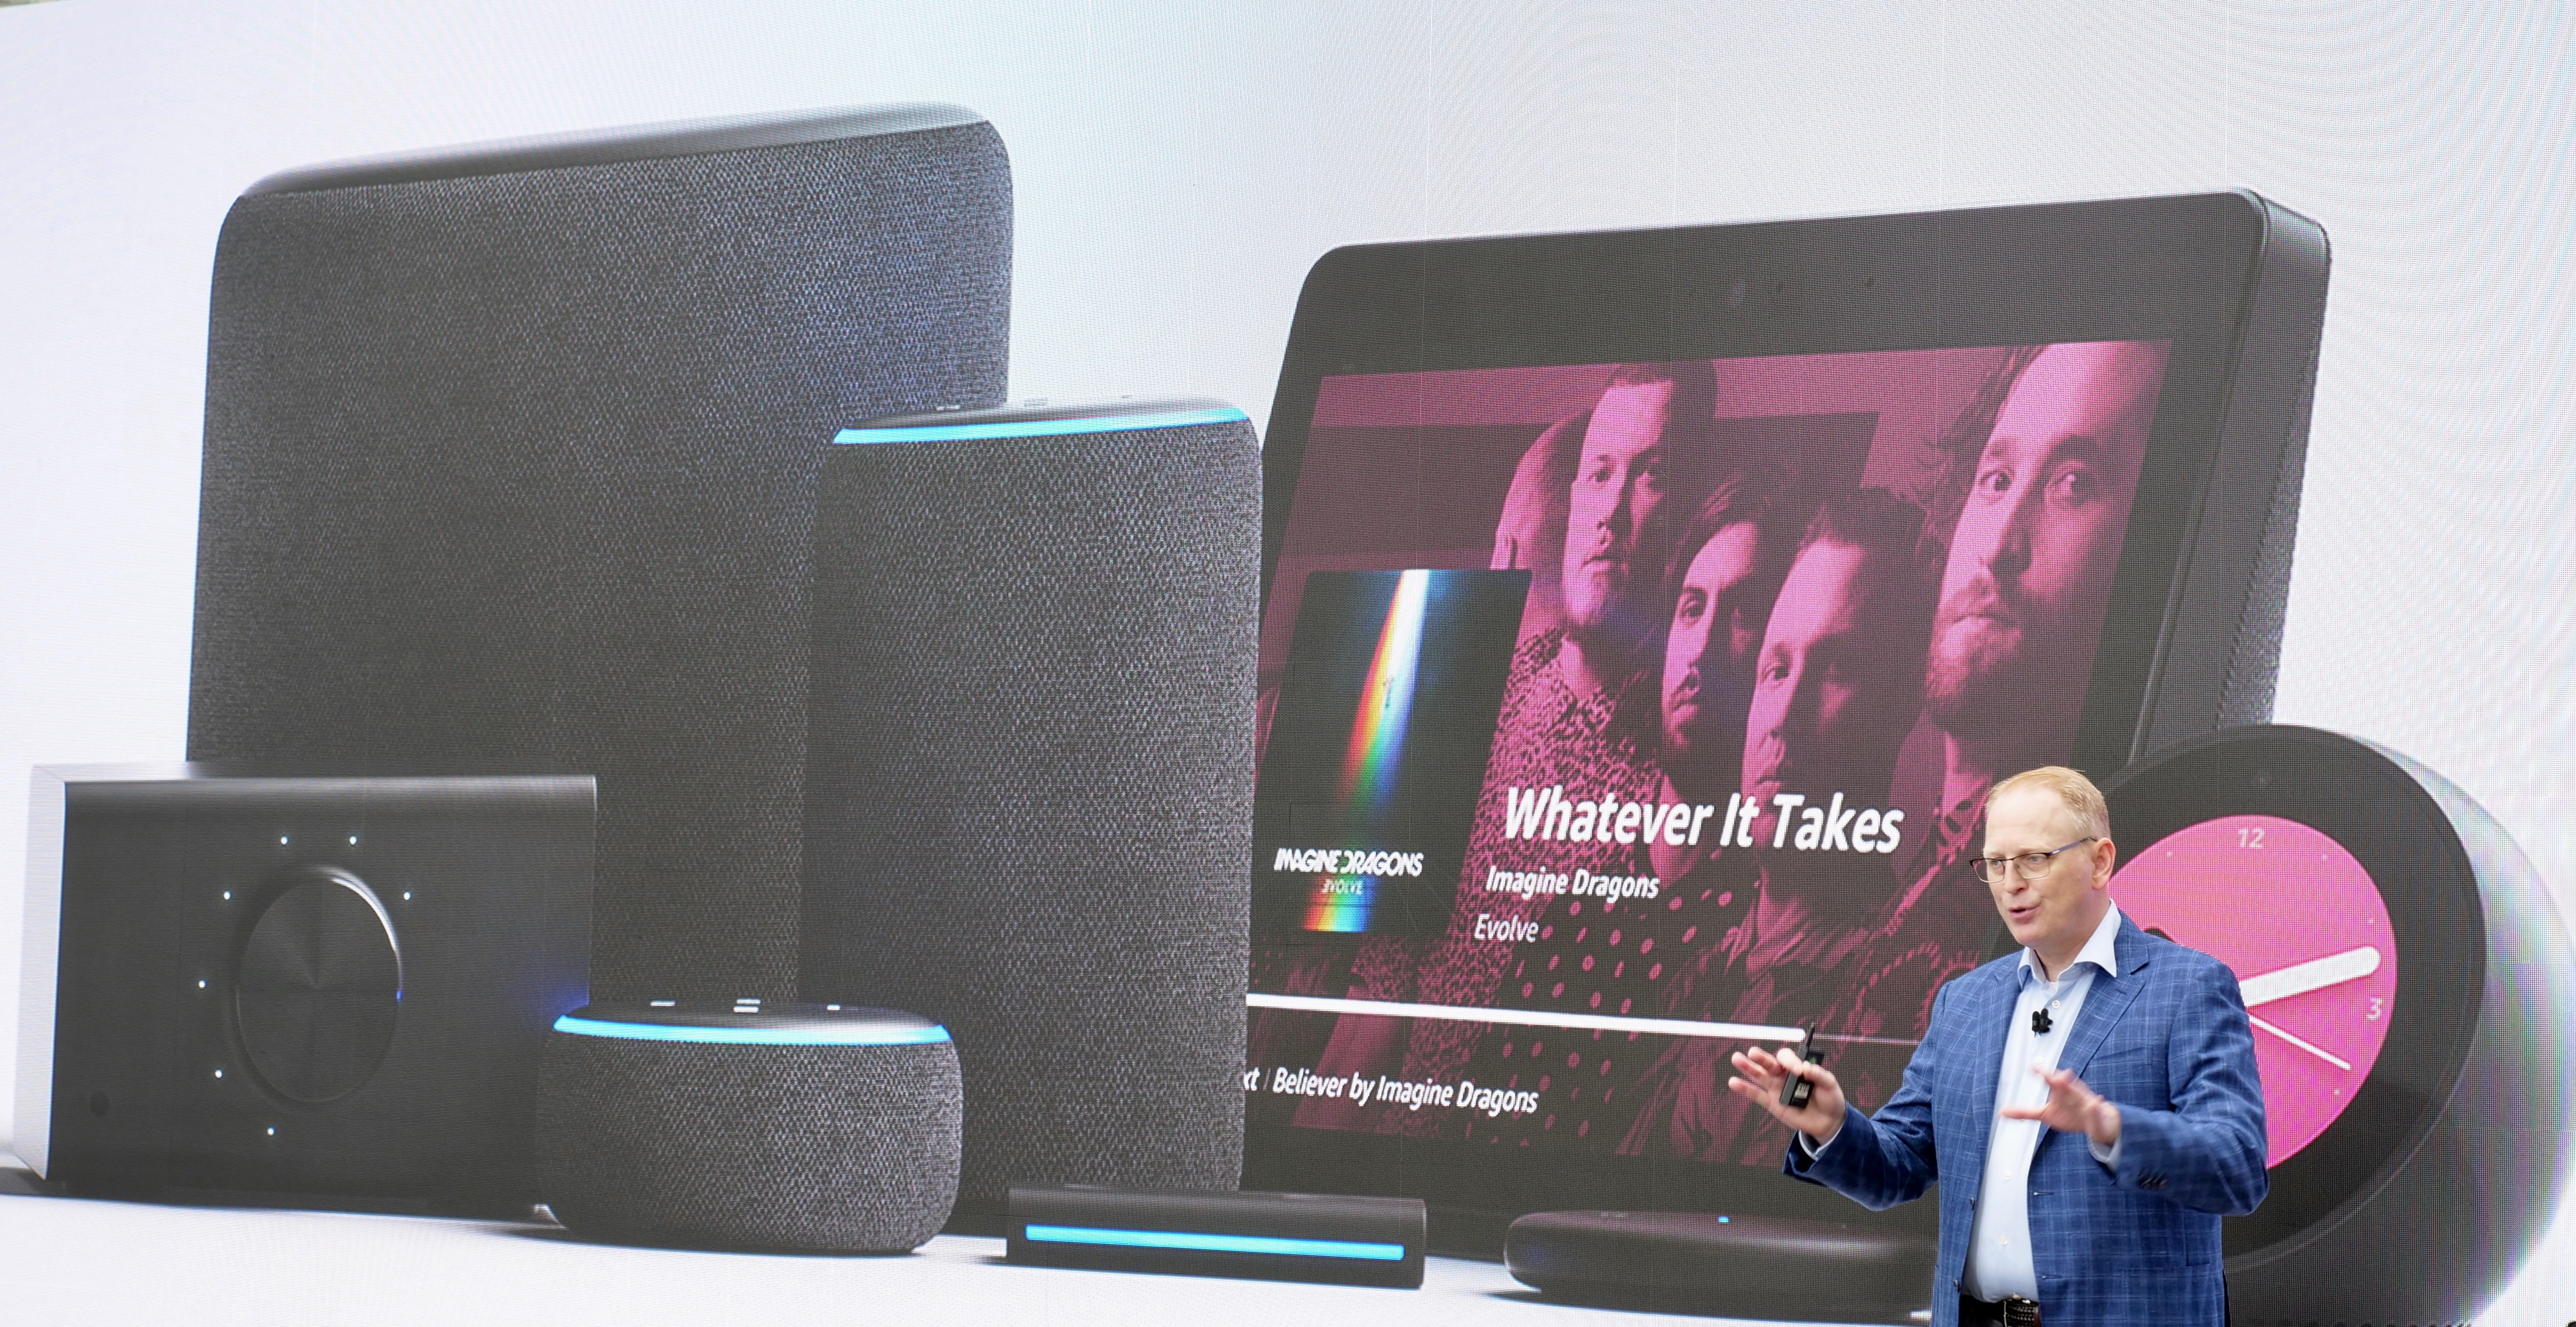 Amazon reveals flurry of new devices as tech giant aims to